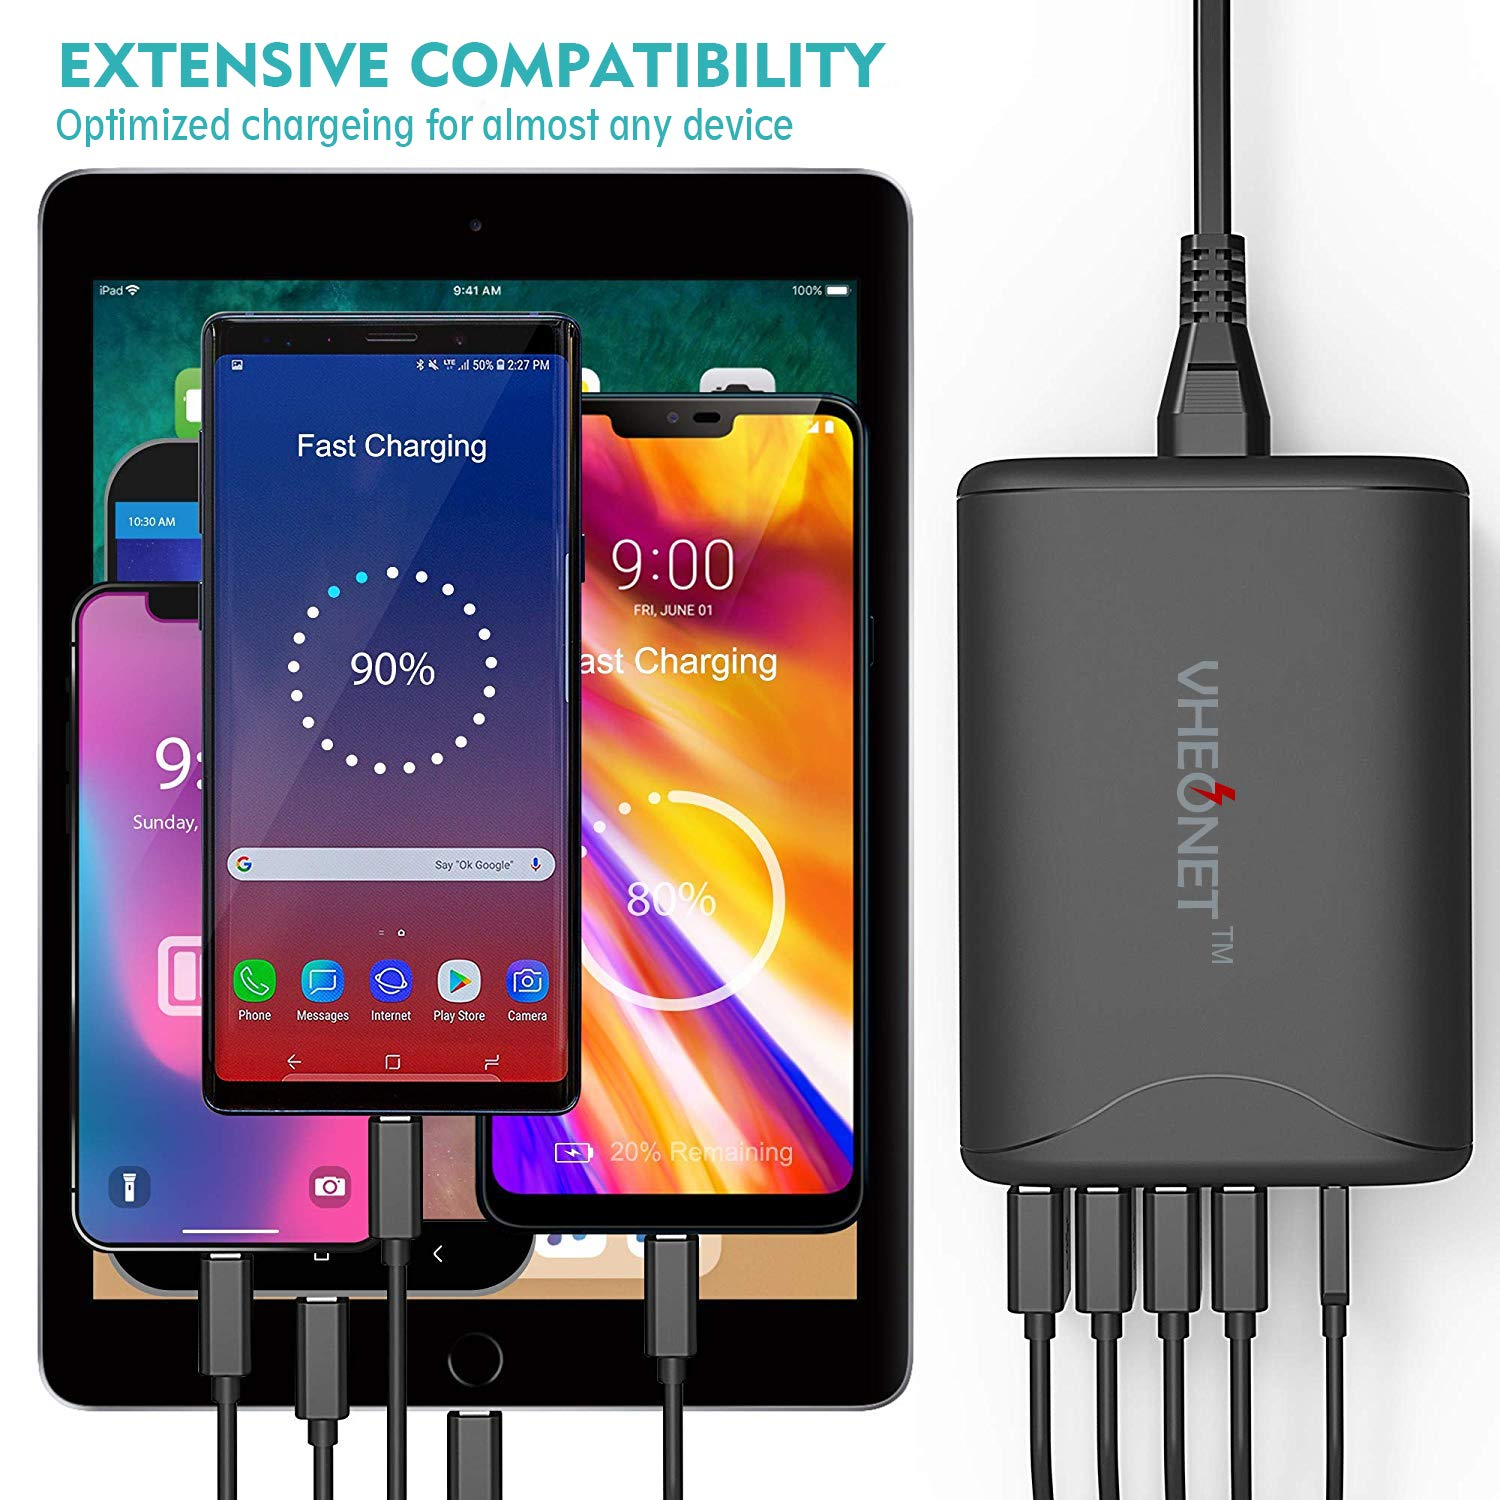 USB C Desktop Charging Station 5 Port PD Wall Charger 60W Fast Charging for iPhone Xs/Xs Max/XR/8/7/6, MacBook, Nexus, Galaxy and More (Black)